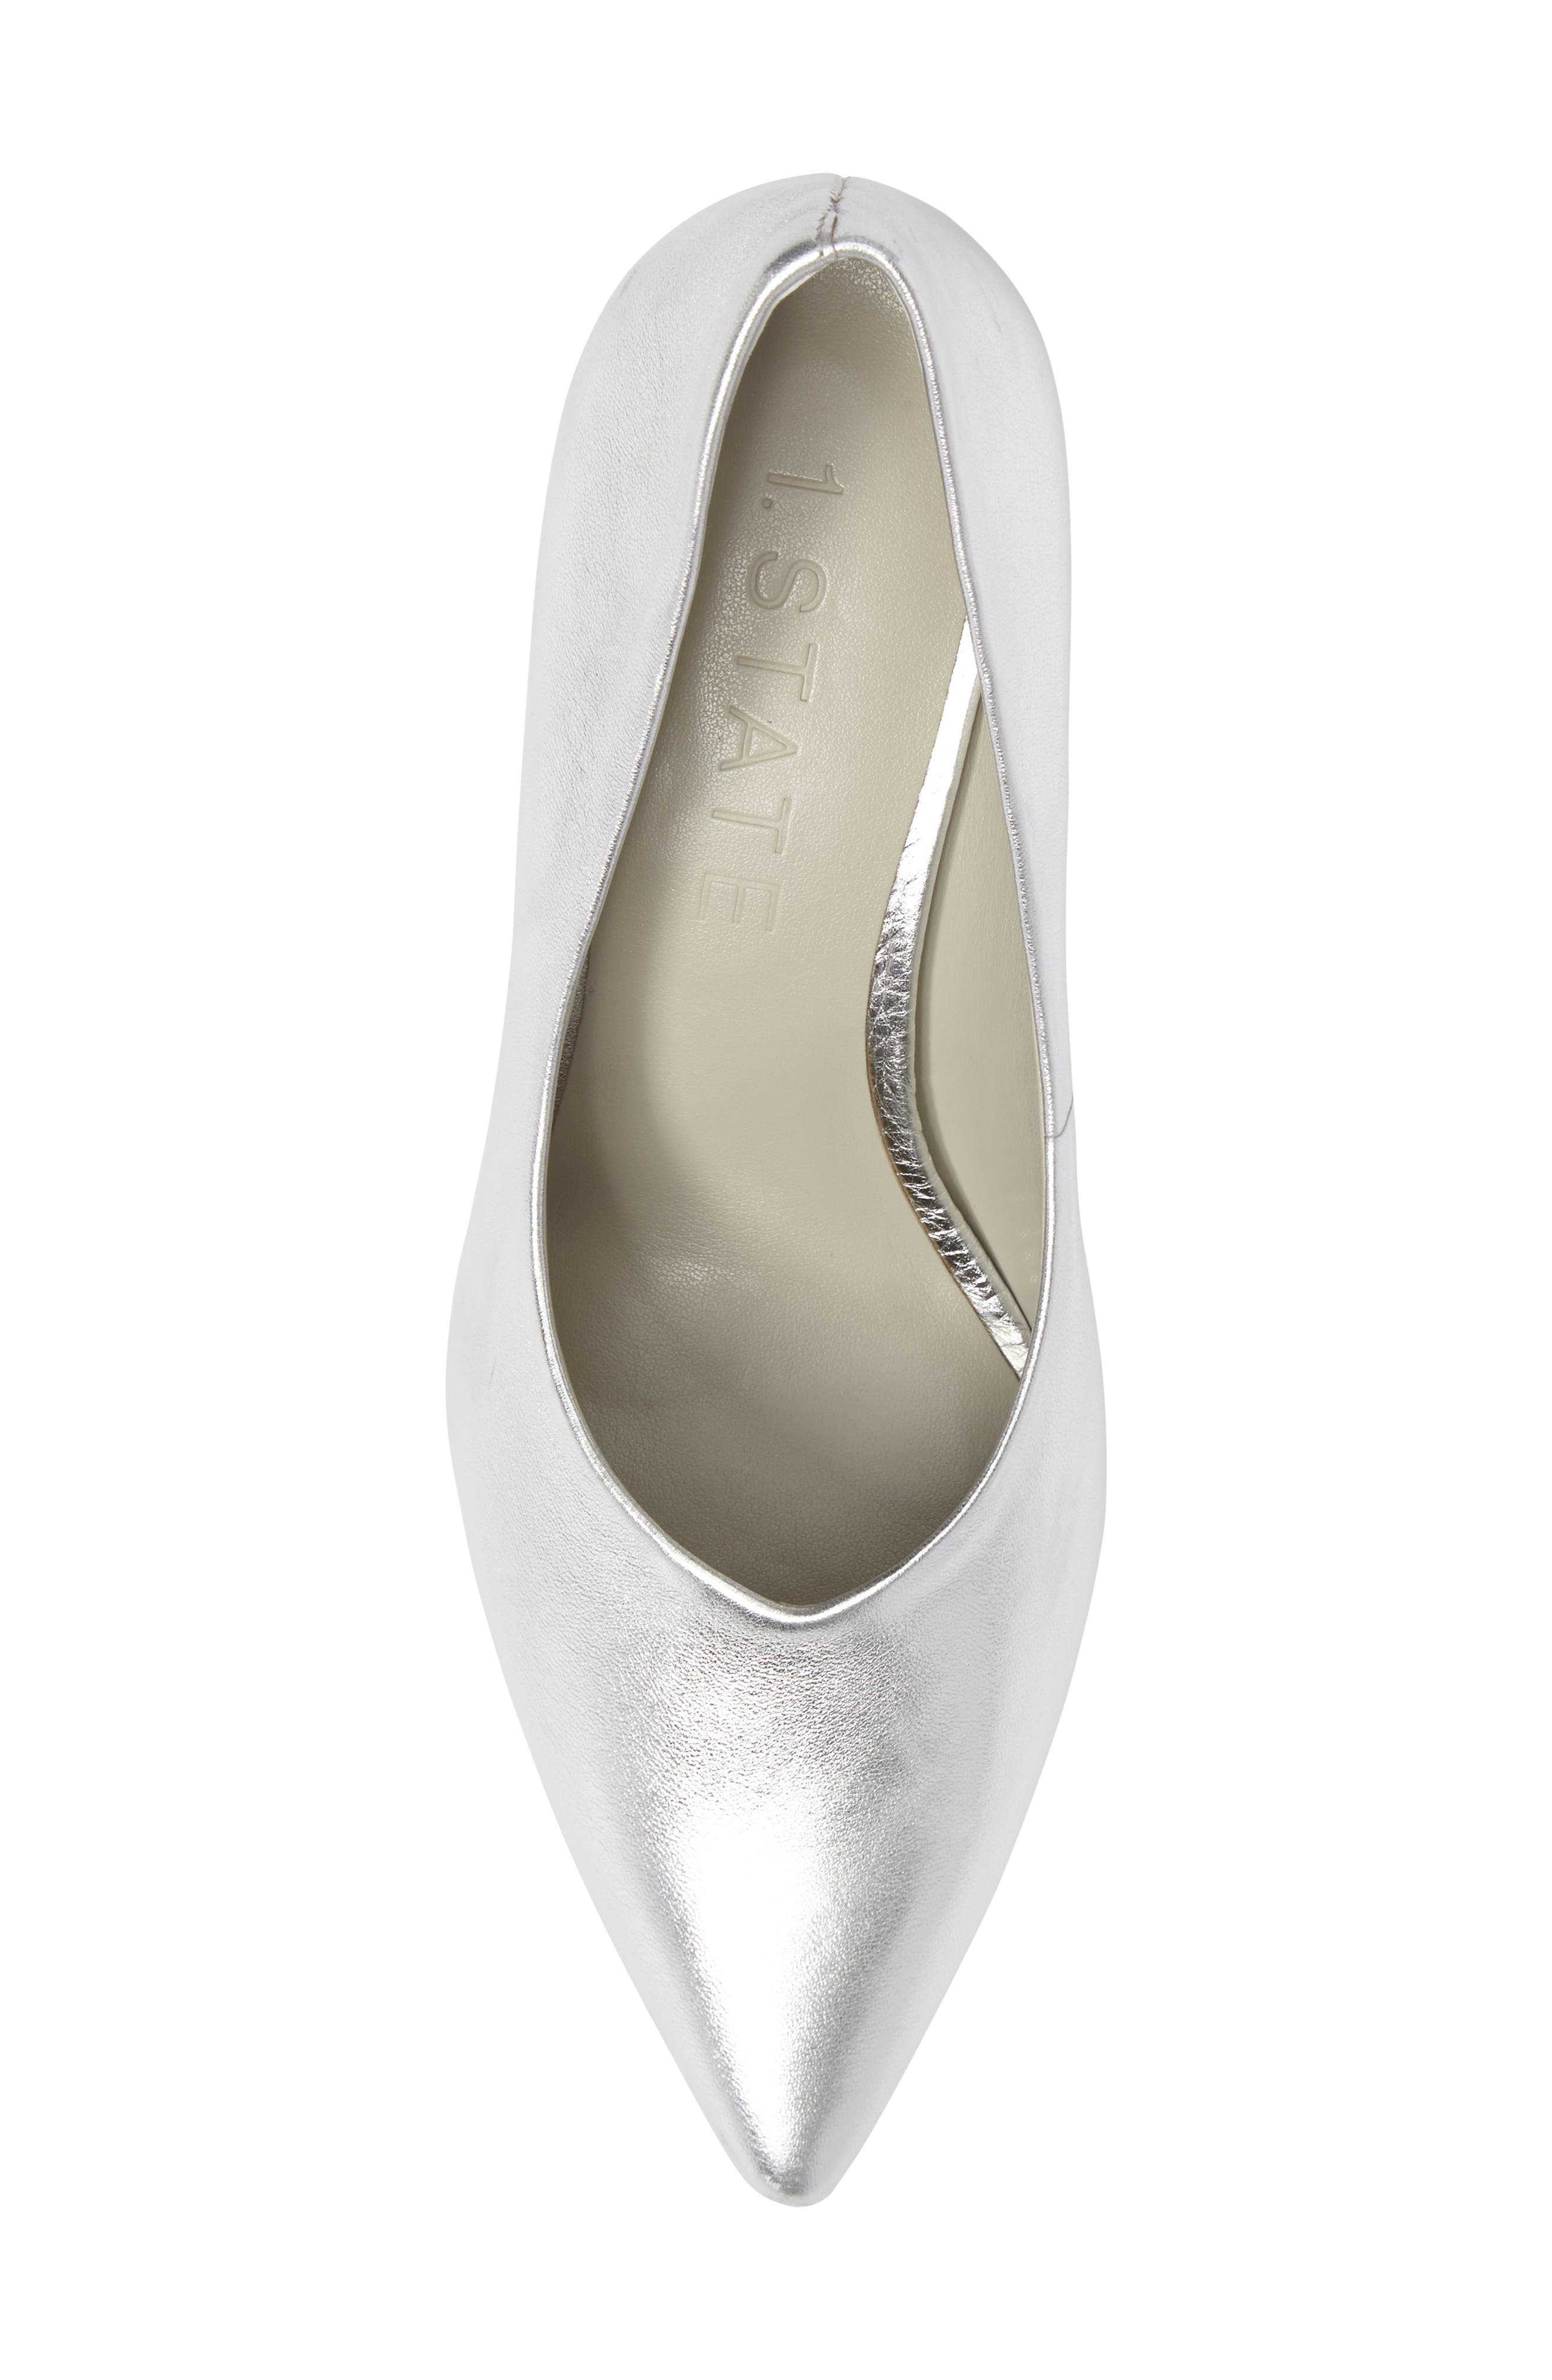 Jact Pointy Toe Pump,                             Alternate thumbnail 5, color,                             Bright Silver Leather